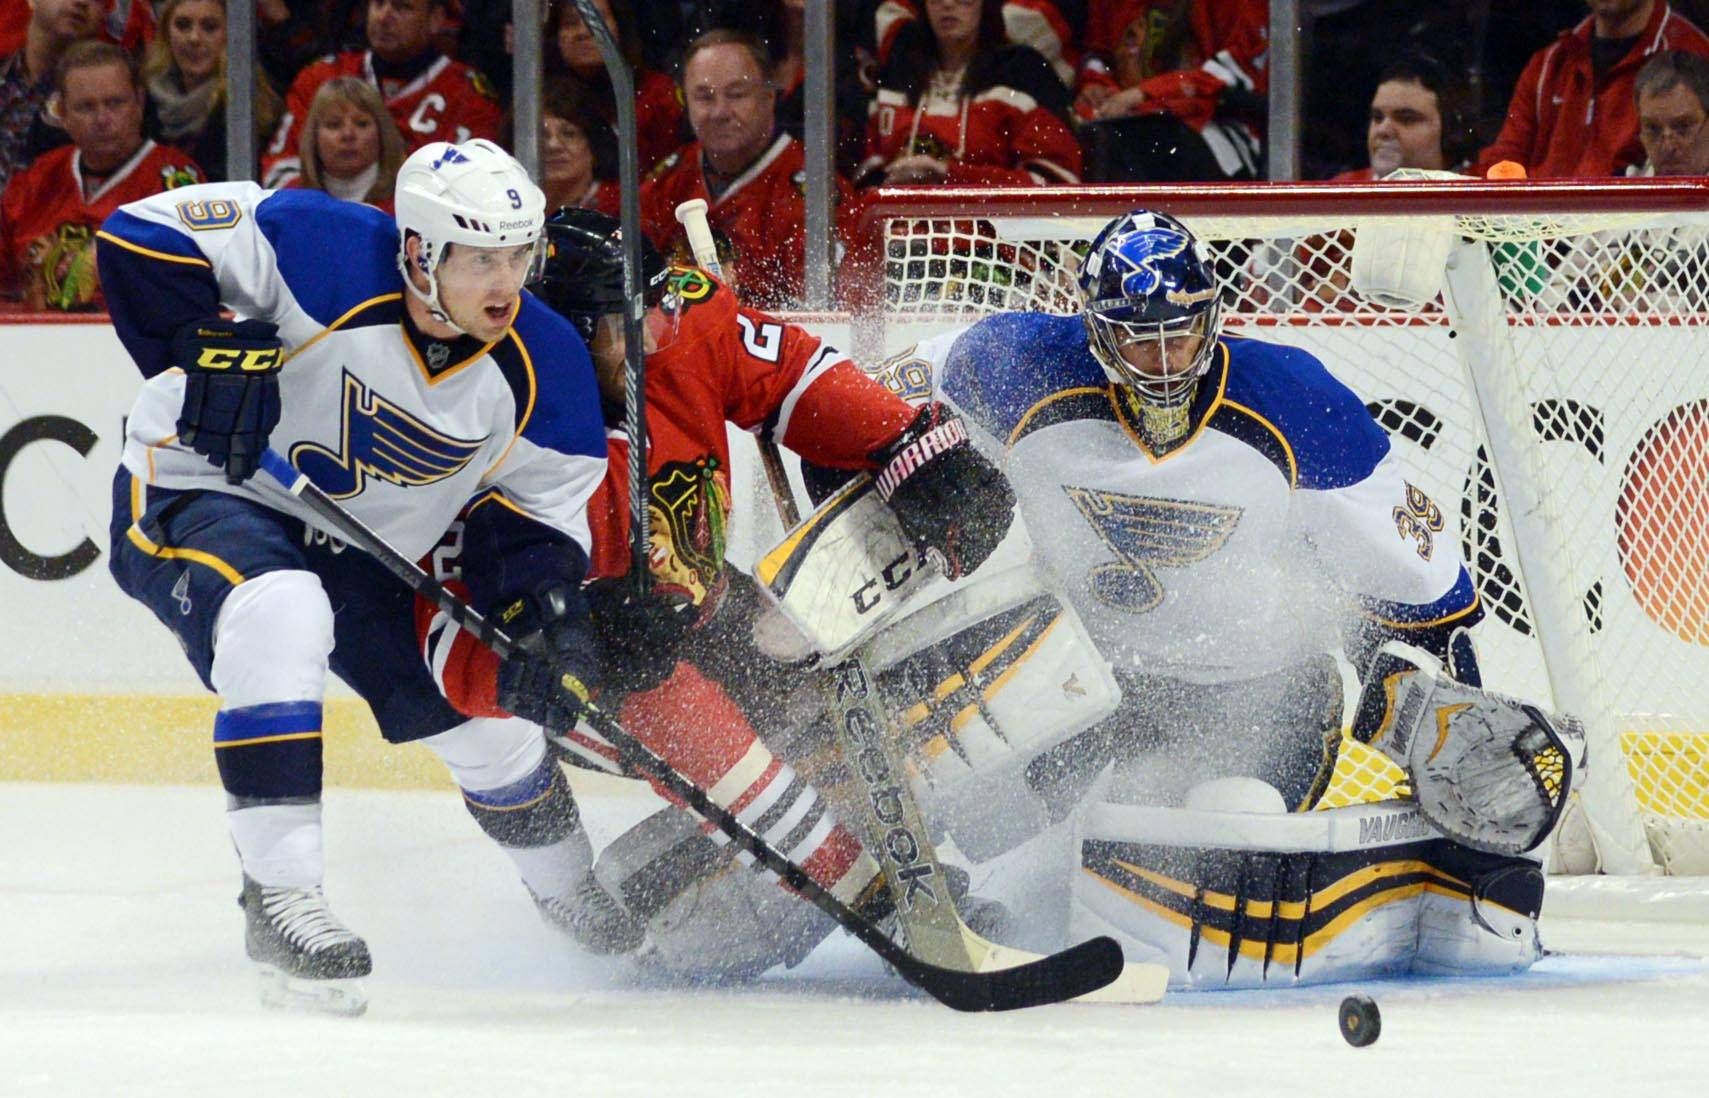 Chicago Blackhawks defenseman Johnny Oduya is blocked from the puck by St. Louis Blues left wing Jaden Schwartz in front of the net.